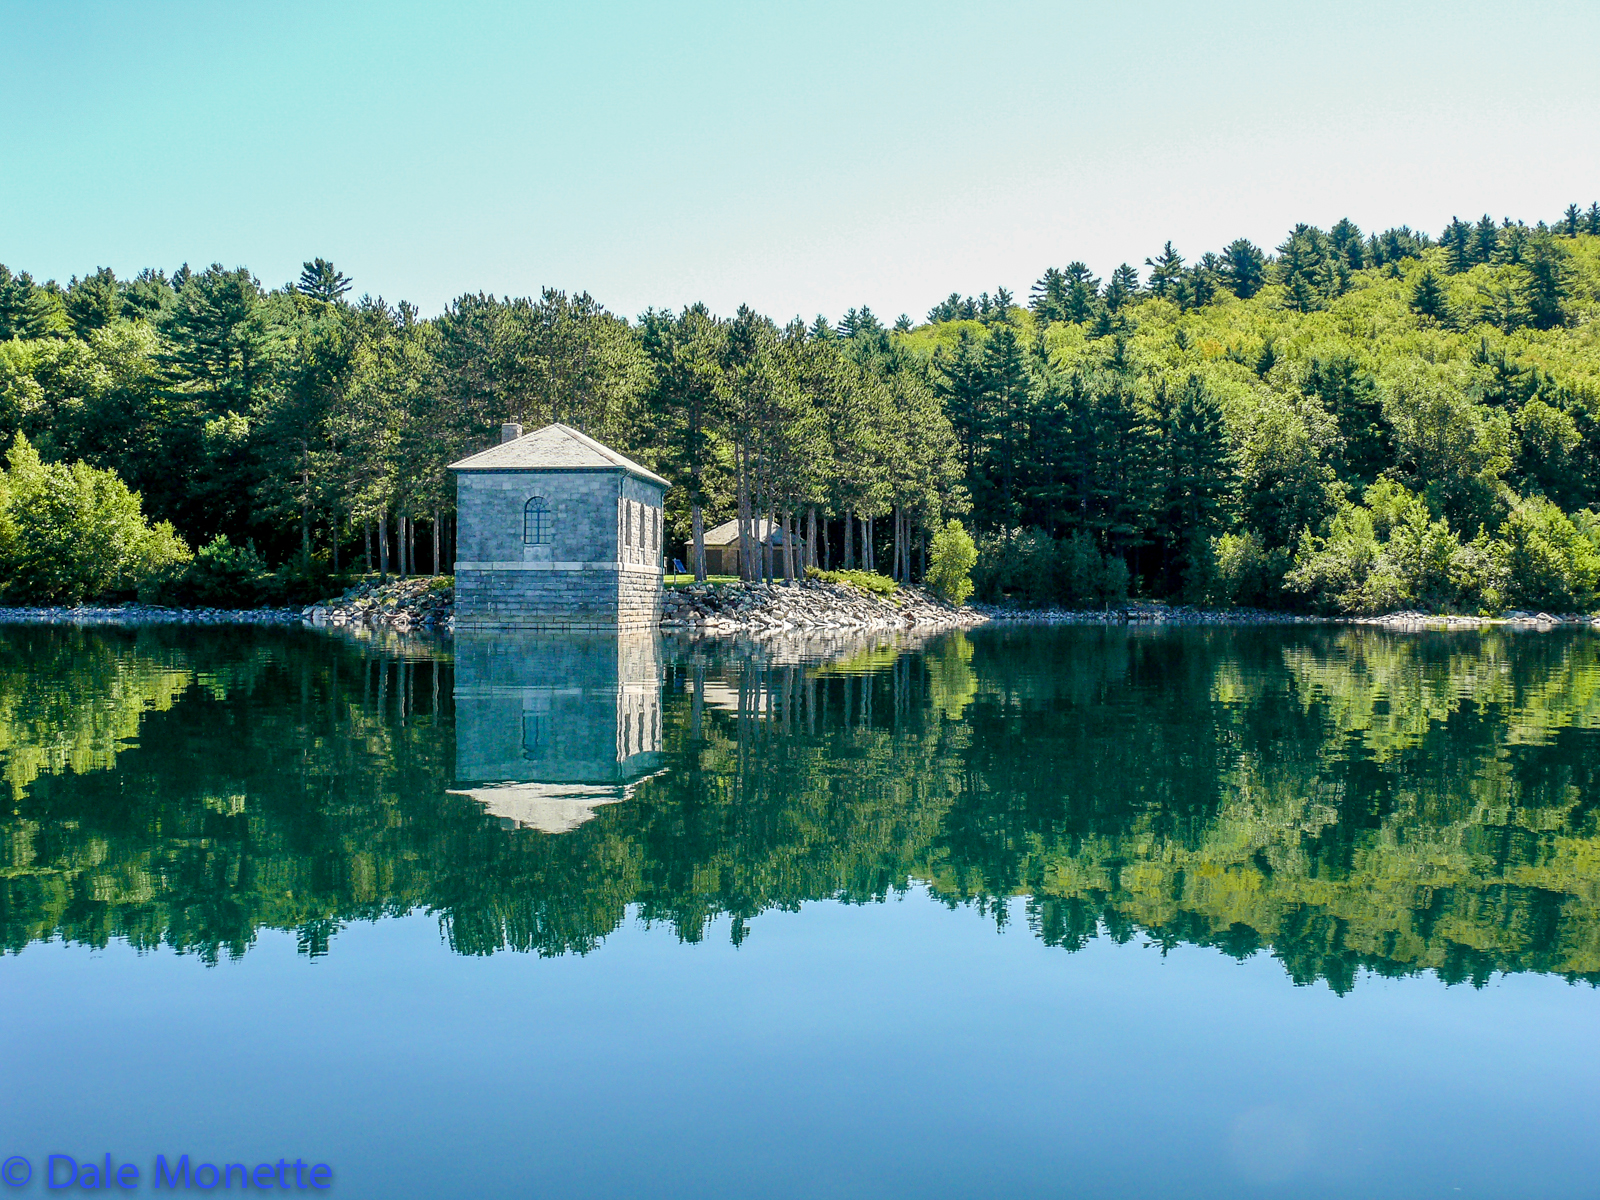 Here is where the water starts it's way to the Boston area thru the Wachusett Reservoir some 24 miles to the east. Shaft 12, the start of a long 24 mile underground tunnel.